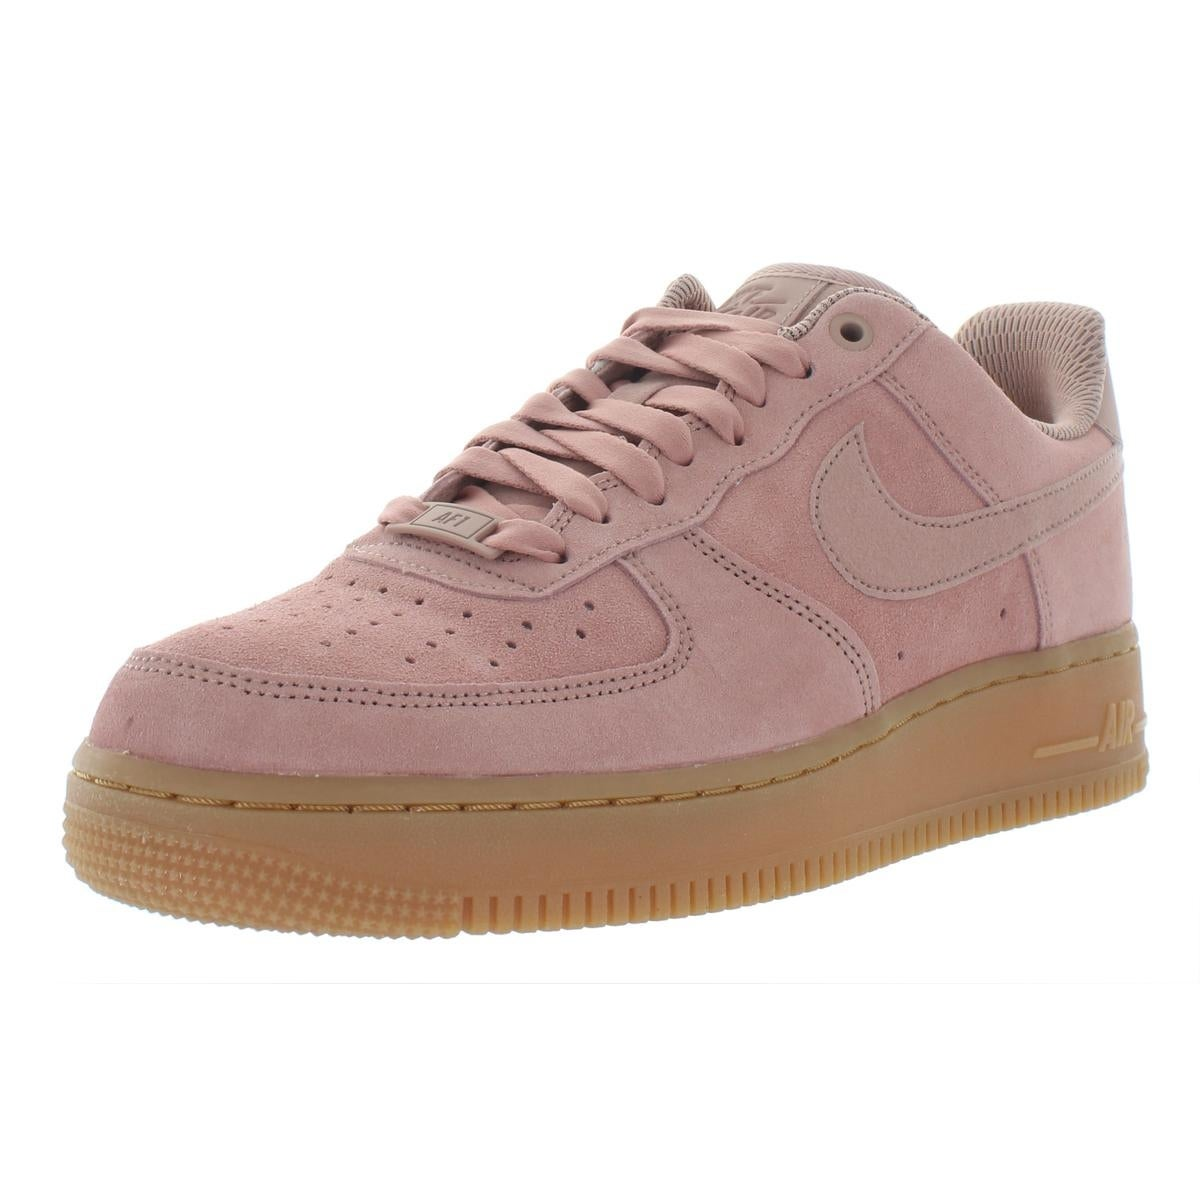 newest c7949 4e8ff Shop Nike Womens Air Force 1  07 SE Fashion Sneakers Suede Low Top - Free  Shipping Today - Overstock - 28001356